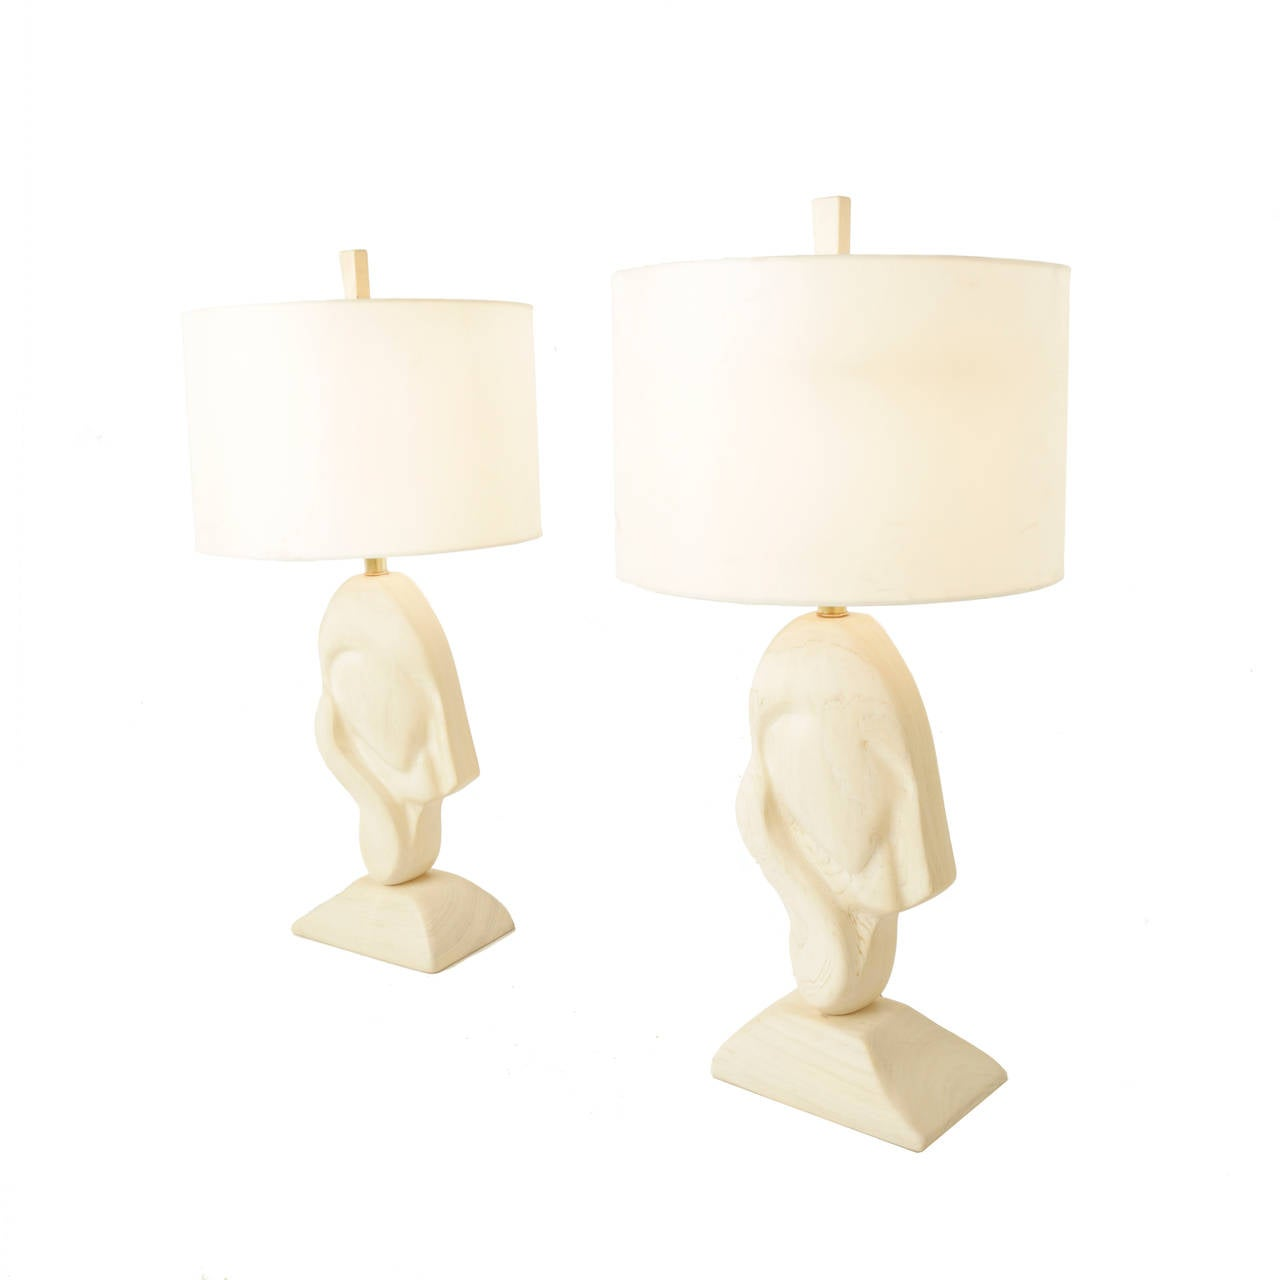 pair of sculptural bleached wood table lamps for sale at 1stdibs. Black Bedroom Furniture Sets. Home Design Ideas